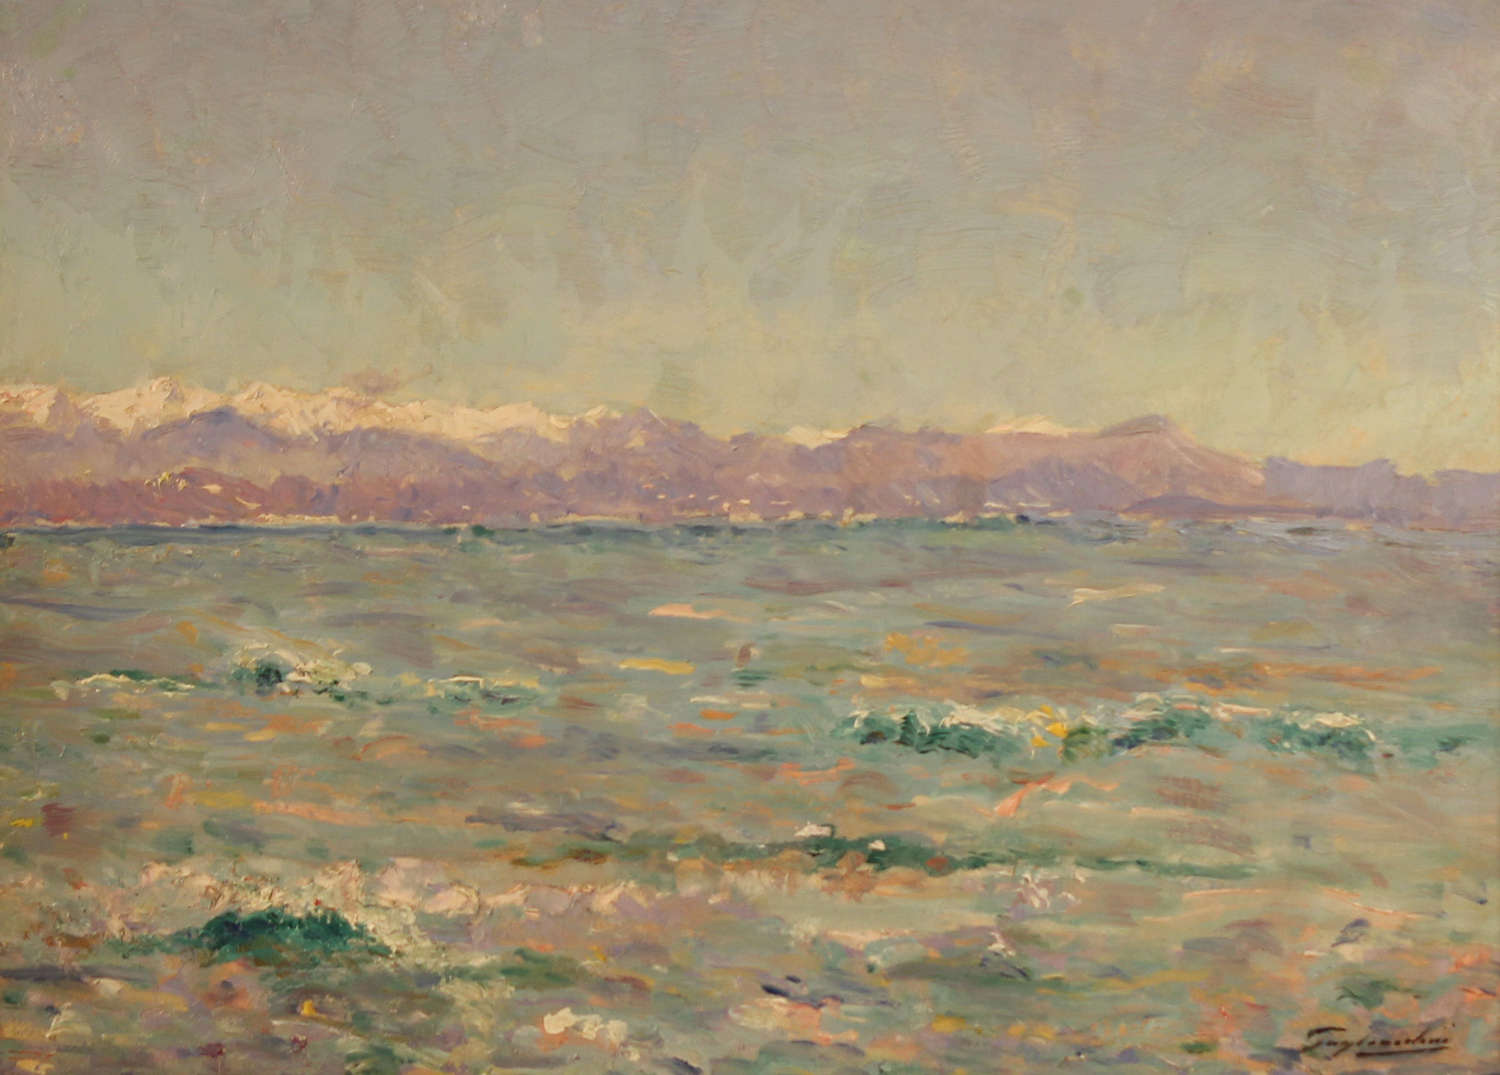 THE ALPS VIEWED FROM THE SEA ~ JULIEN GUSTAVE GAGLIARDINI